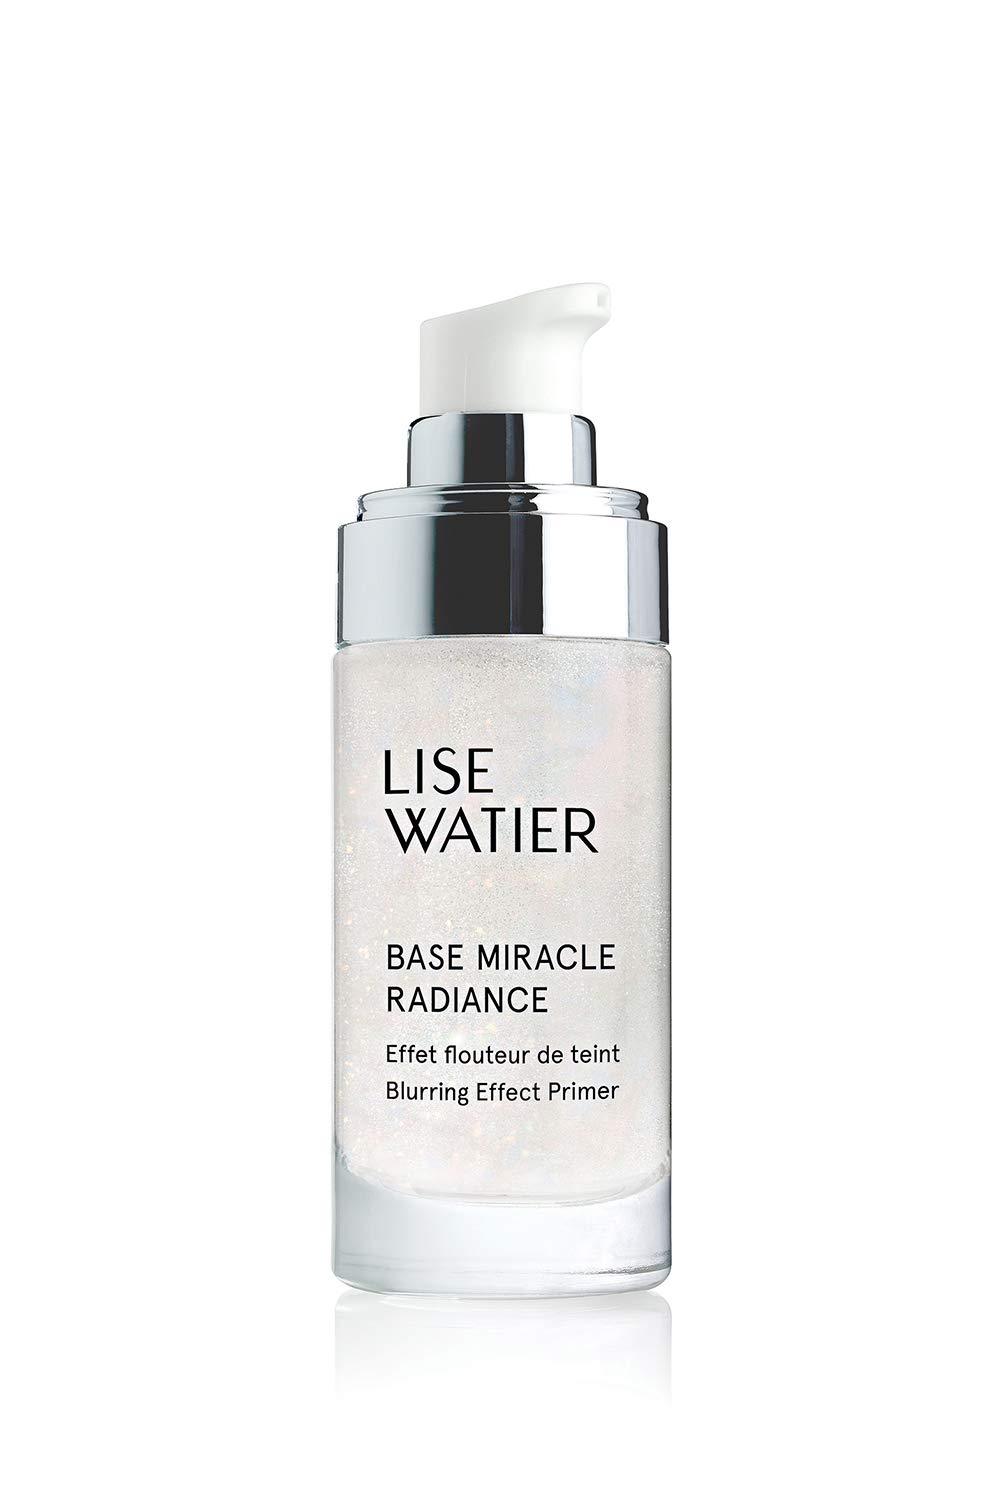 Lise Watier Base Miracle Radiance Blurring Effect Primer, 1.01 Fluid Ounce Marcelle group - Beauty